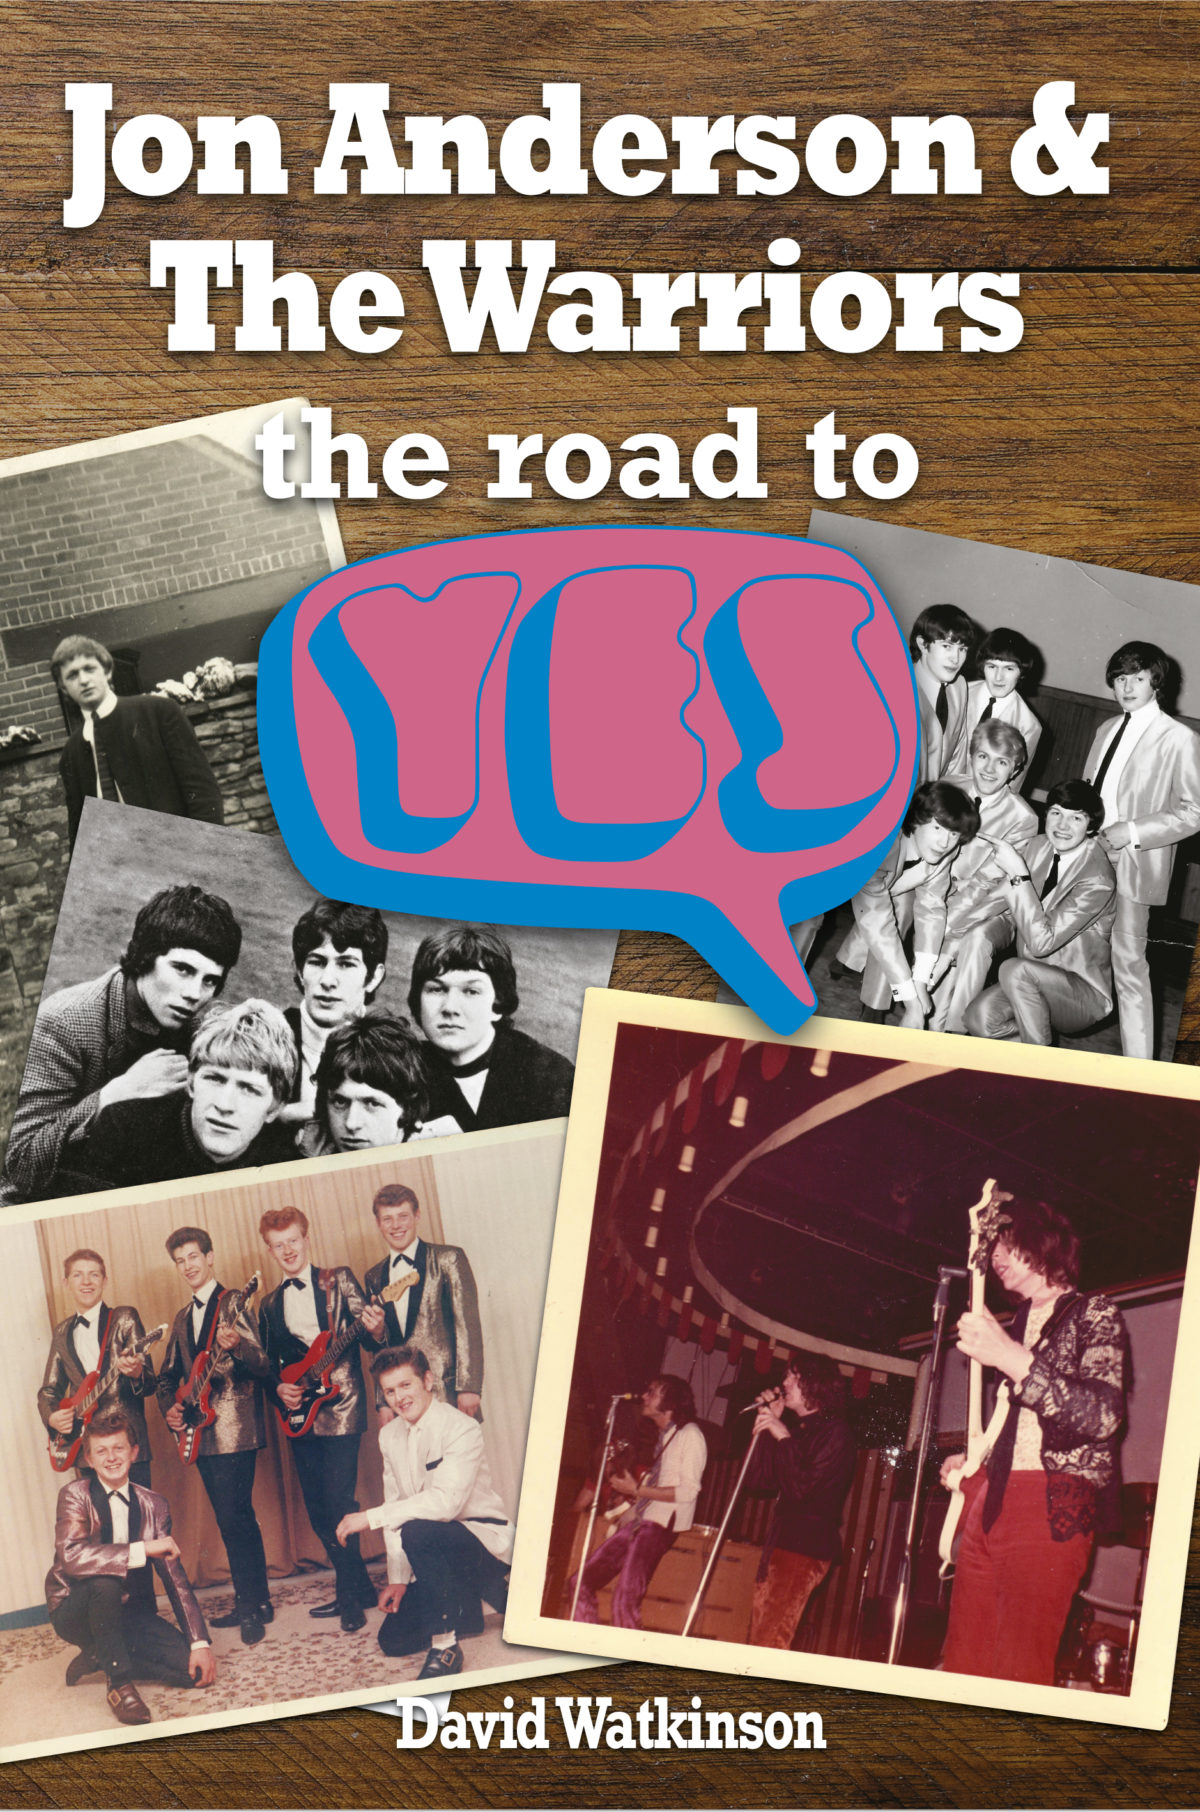 Dave Watkinson's new book – Jon Anderson and The Warriors – the road to Yes – 407